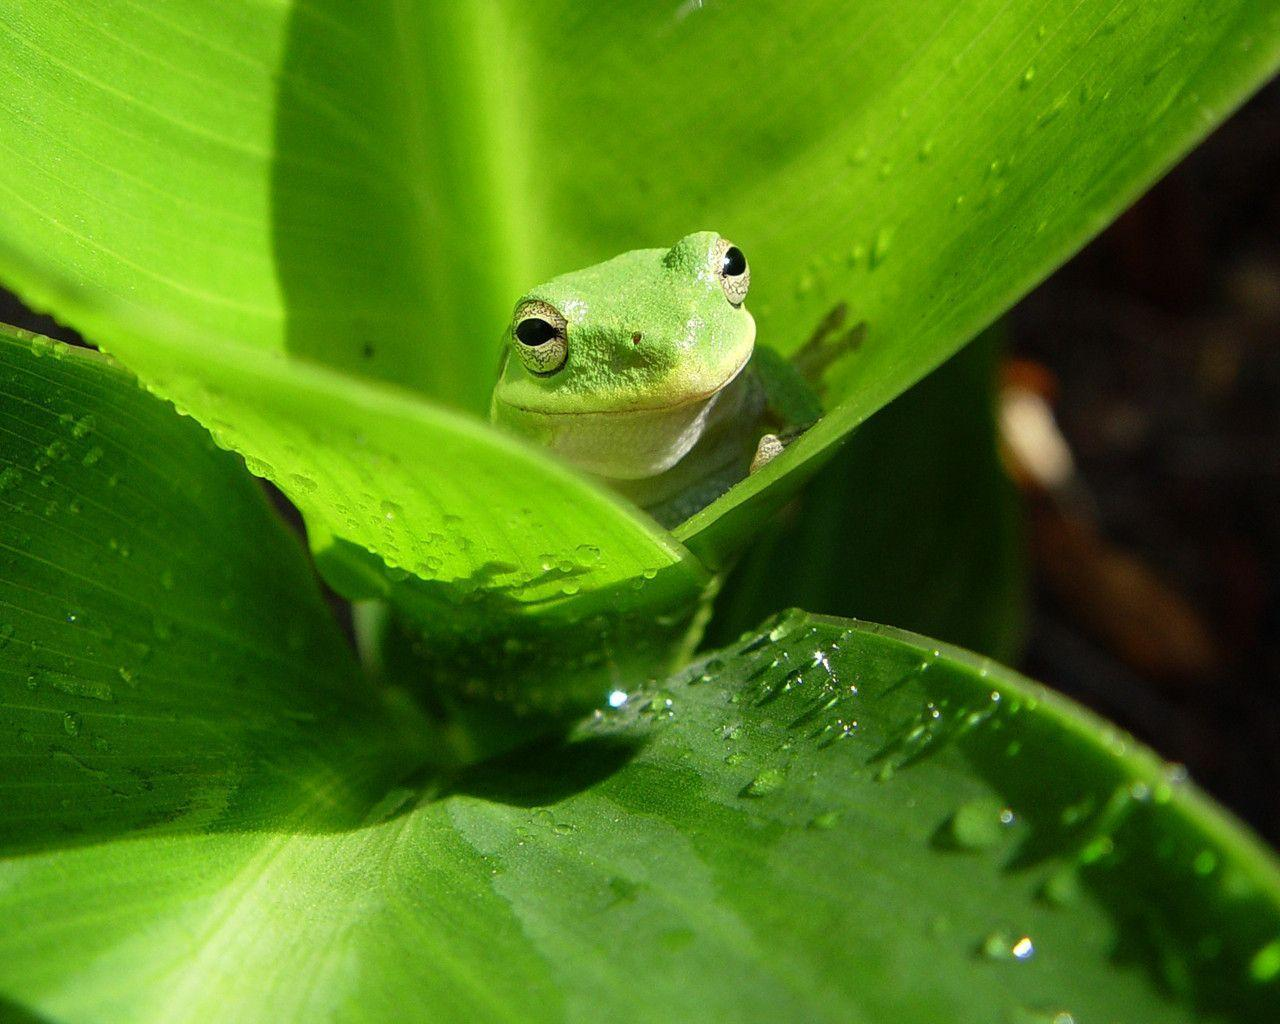 best Frog wallpapers images on Pinterest